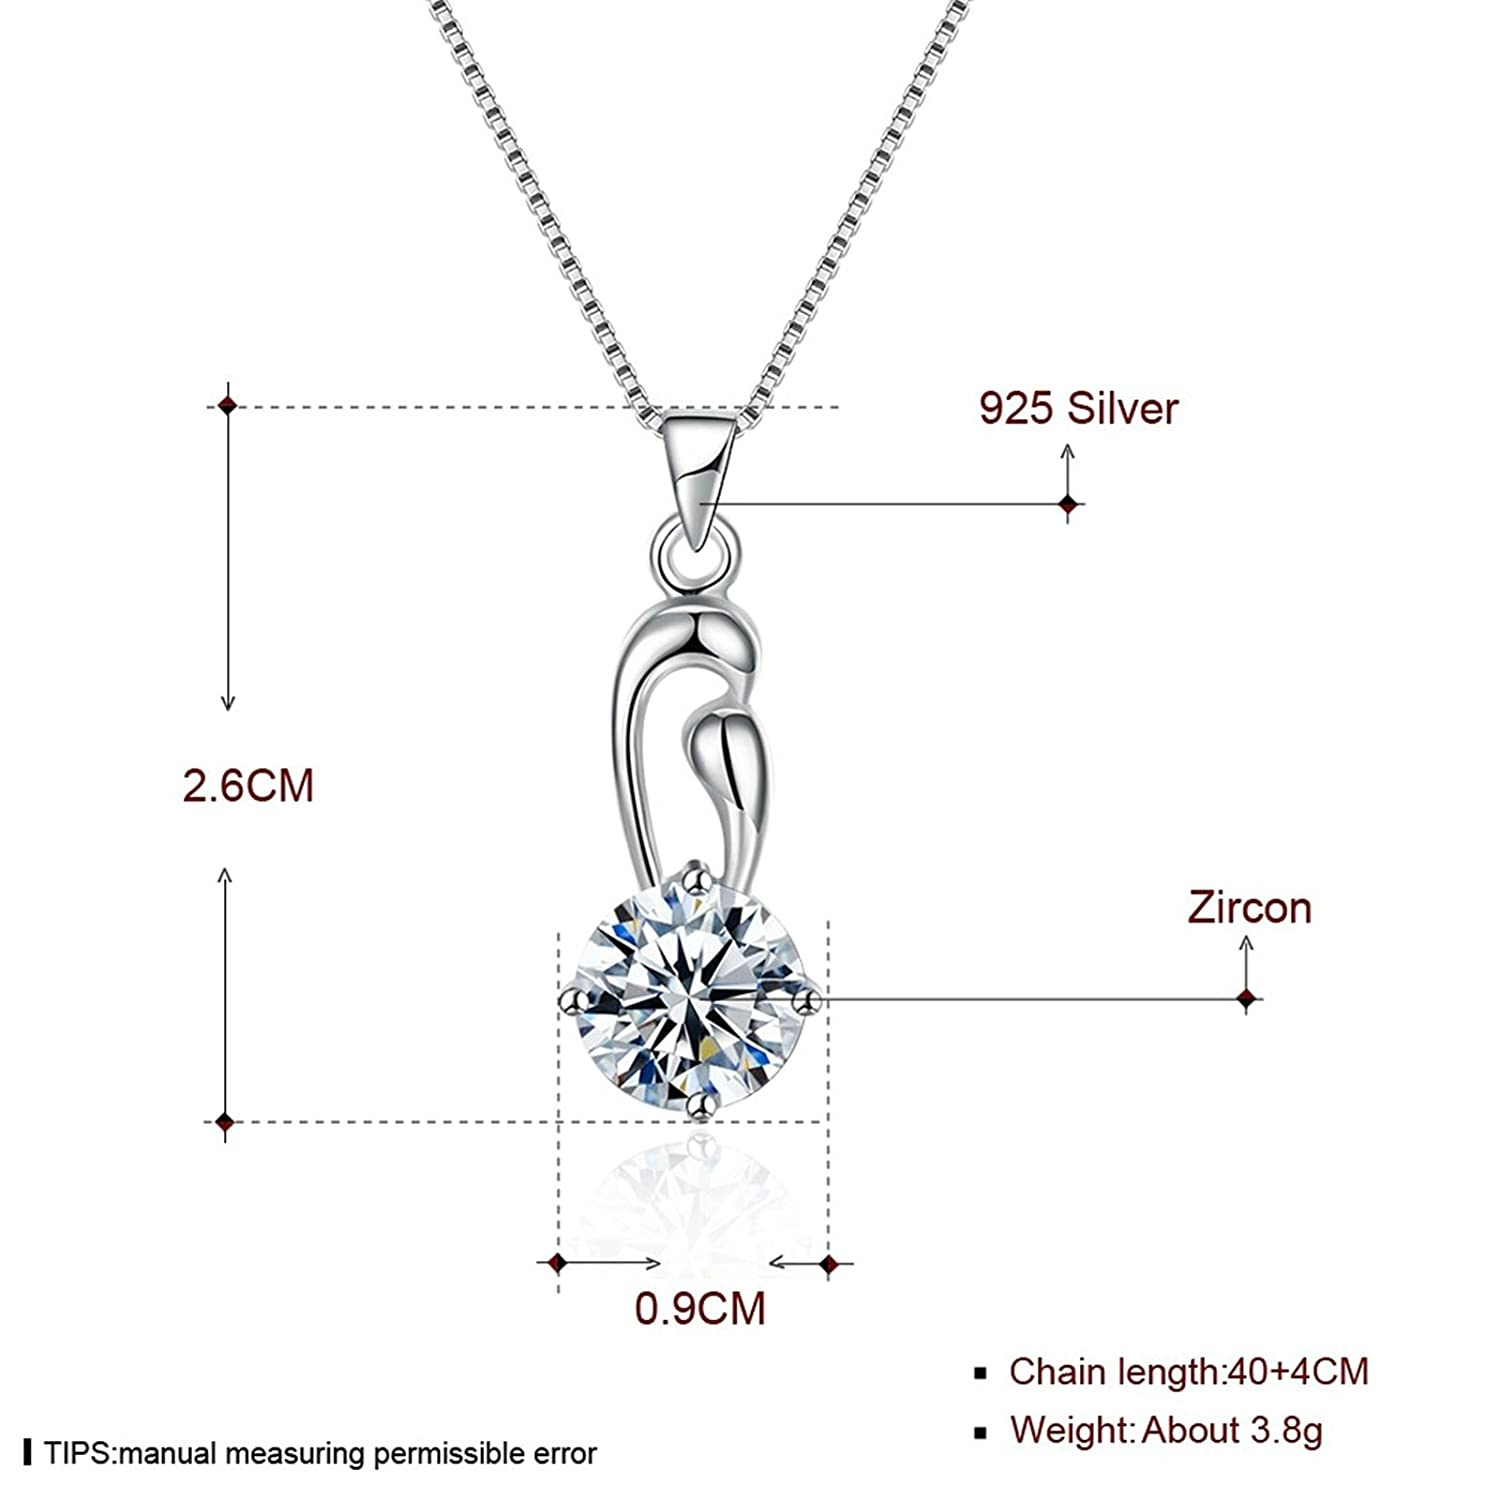 40+4CM Aokarry S925 Silver Necklace for Women Hollow Drill White Chain Length